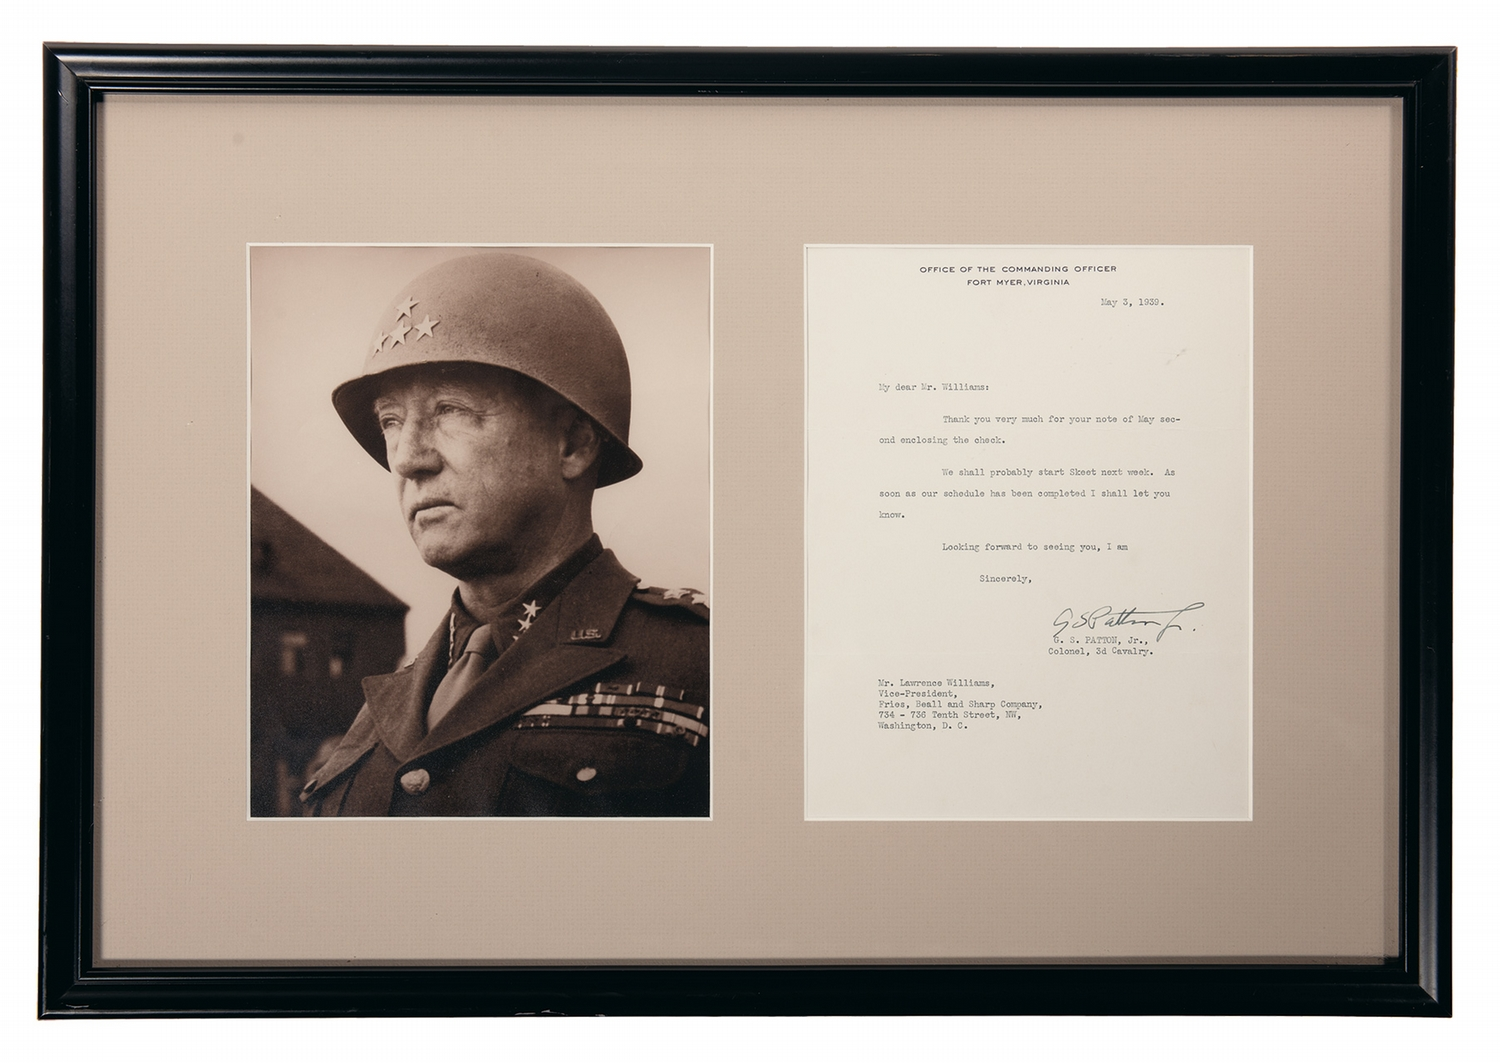 Framed Photograph and Signed Correspondence of General George S. Patton